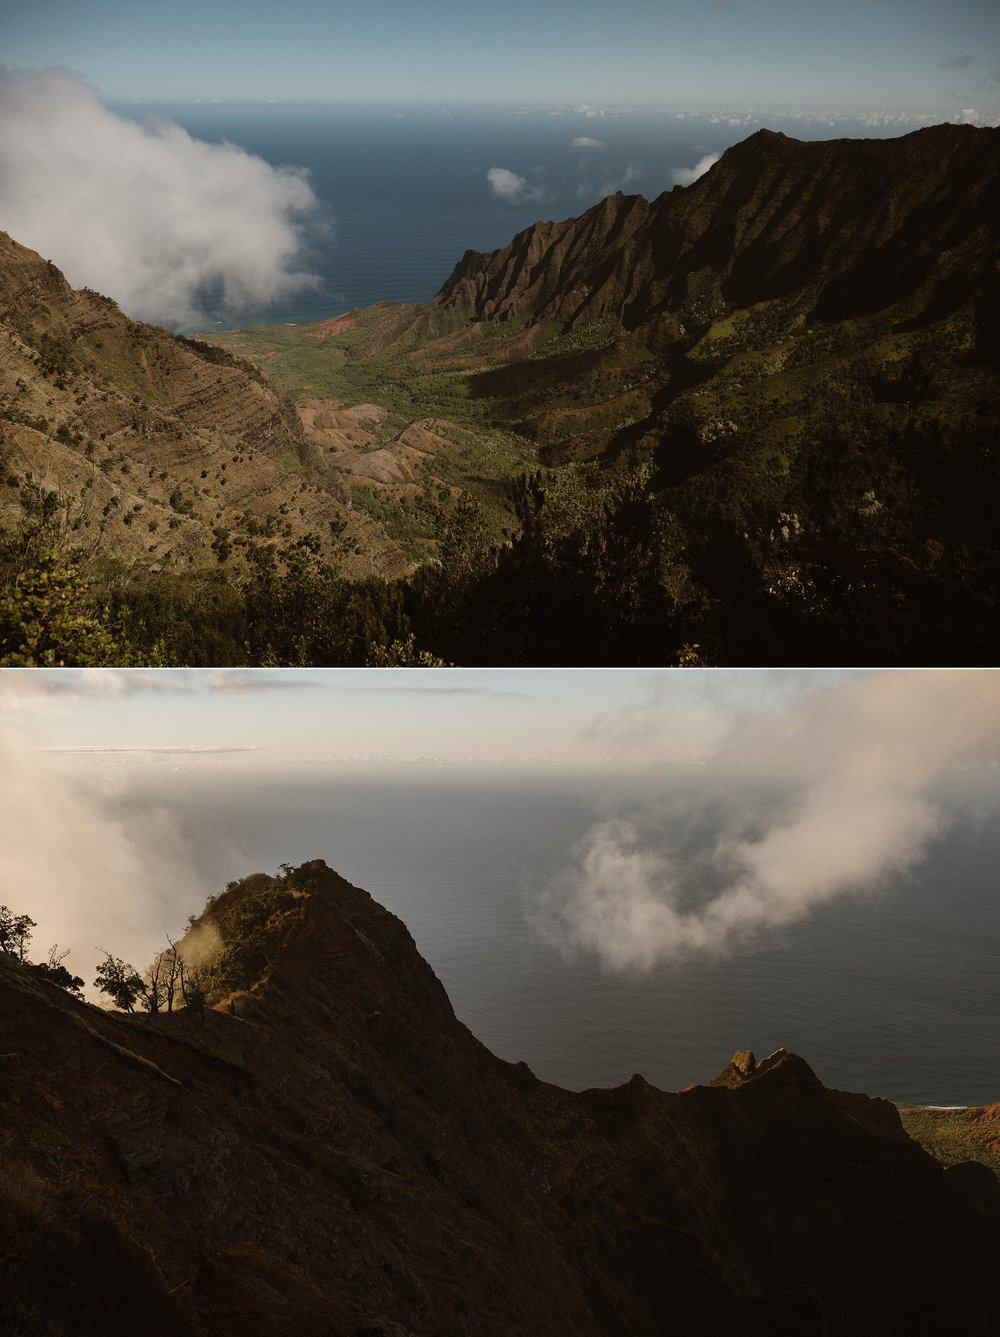 High on the hilltops above the shorelines of Kauai where most people think of when they envision Hawaii, Kourtney and Chris said their vows privately at an intimate elopement ceremony with their traveling wedding photographer, Maddie Mae.